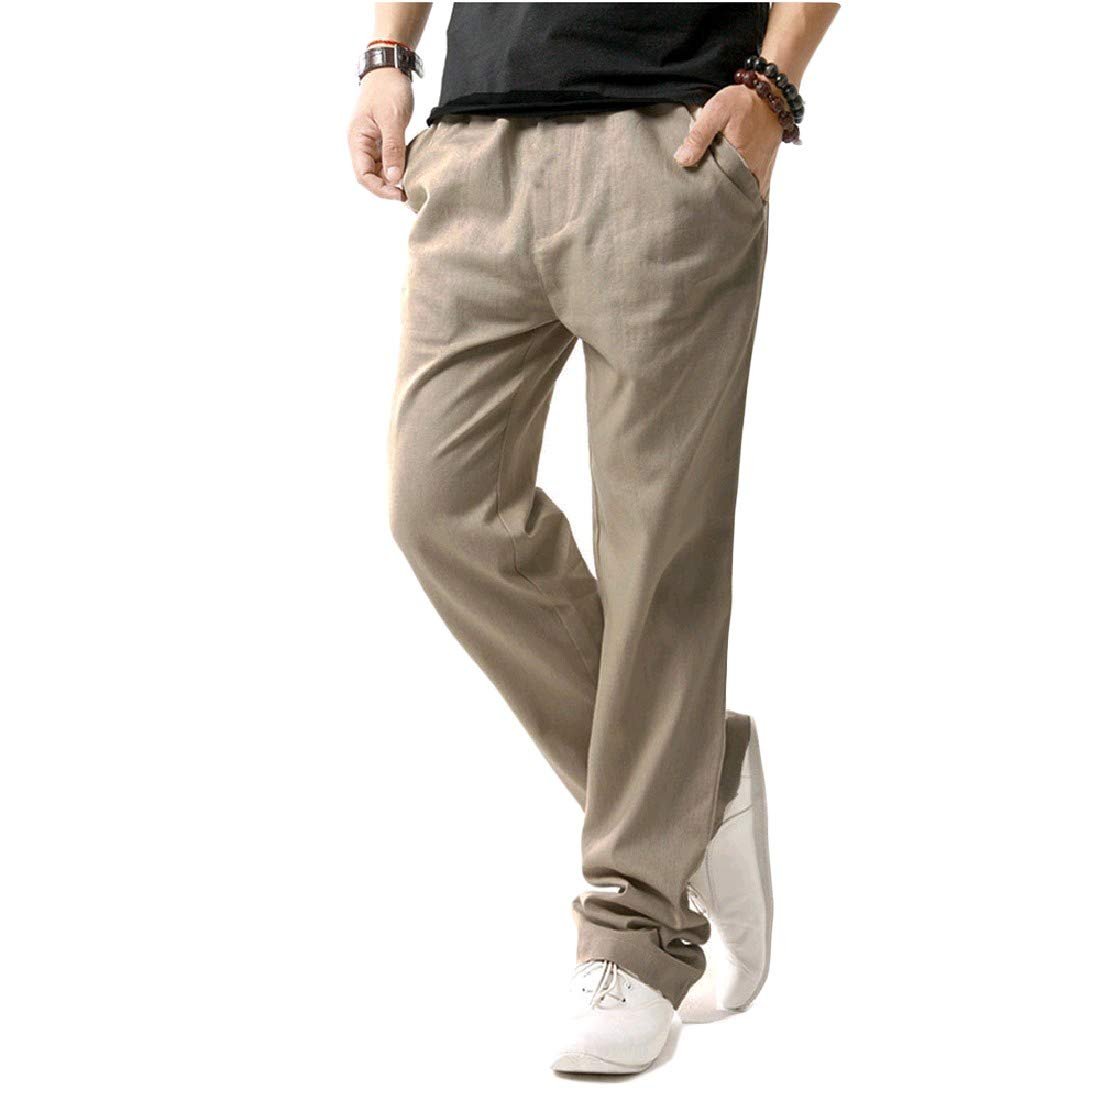 Andopa Mens Straight Linen Plus Size Drawstring Trousers Pants